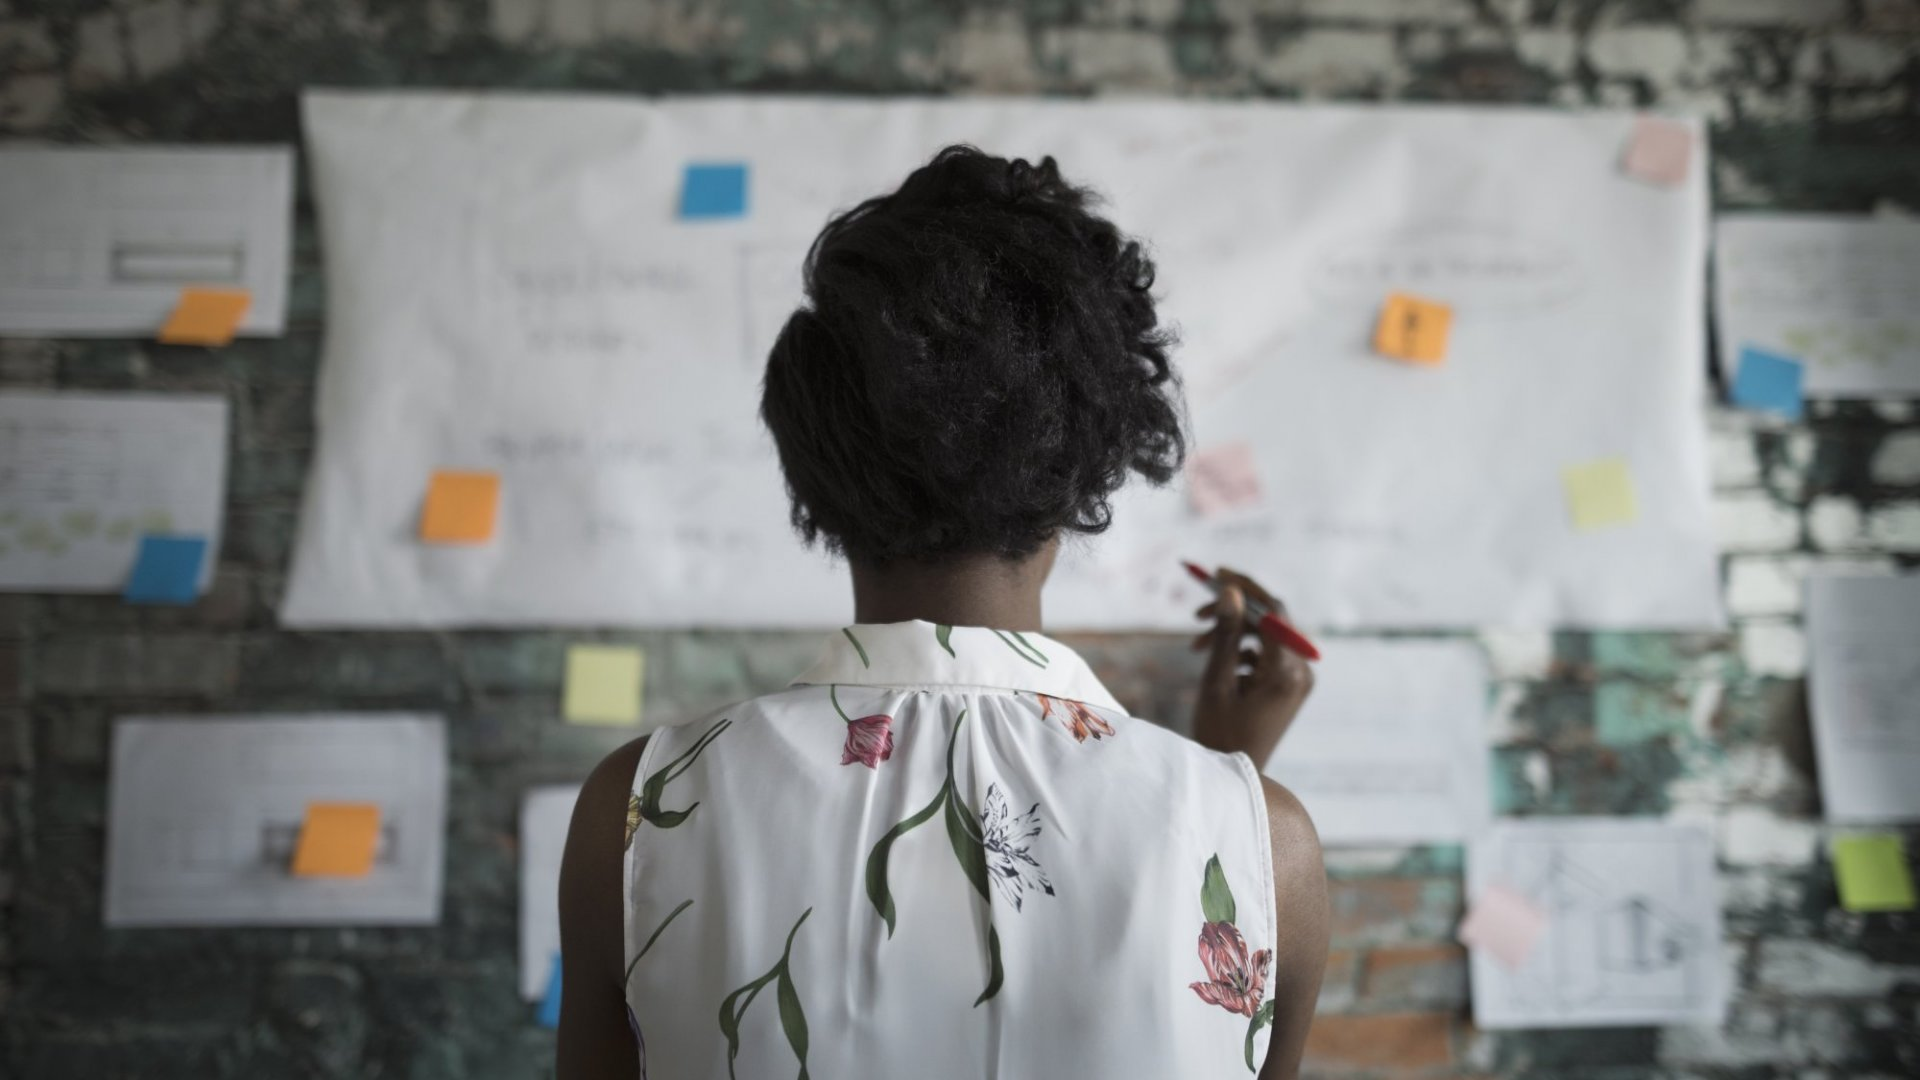 5 Reasons Your Brainstorming Sessions are a Waste of Time